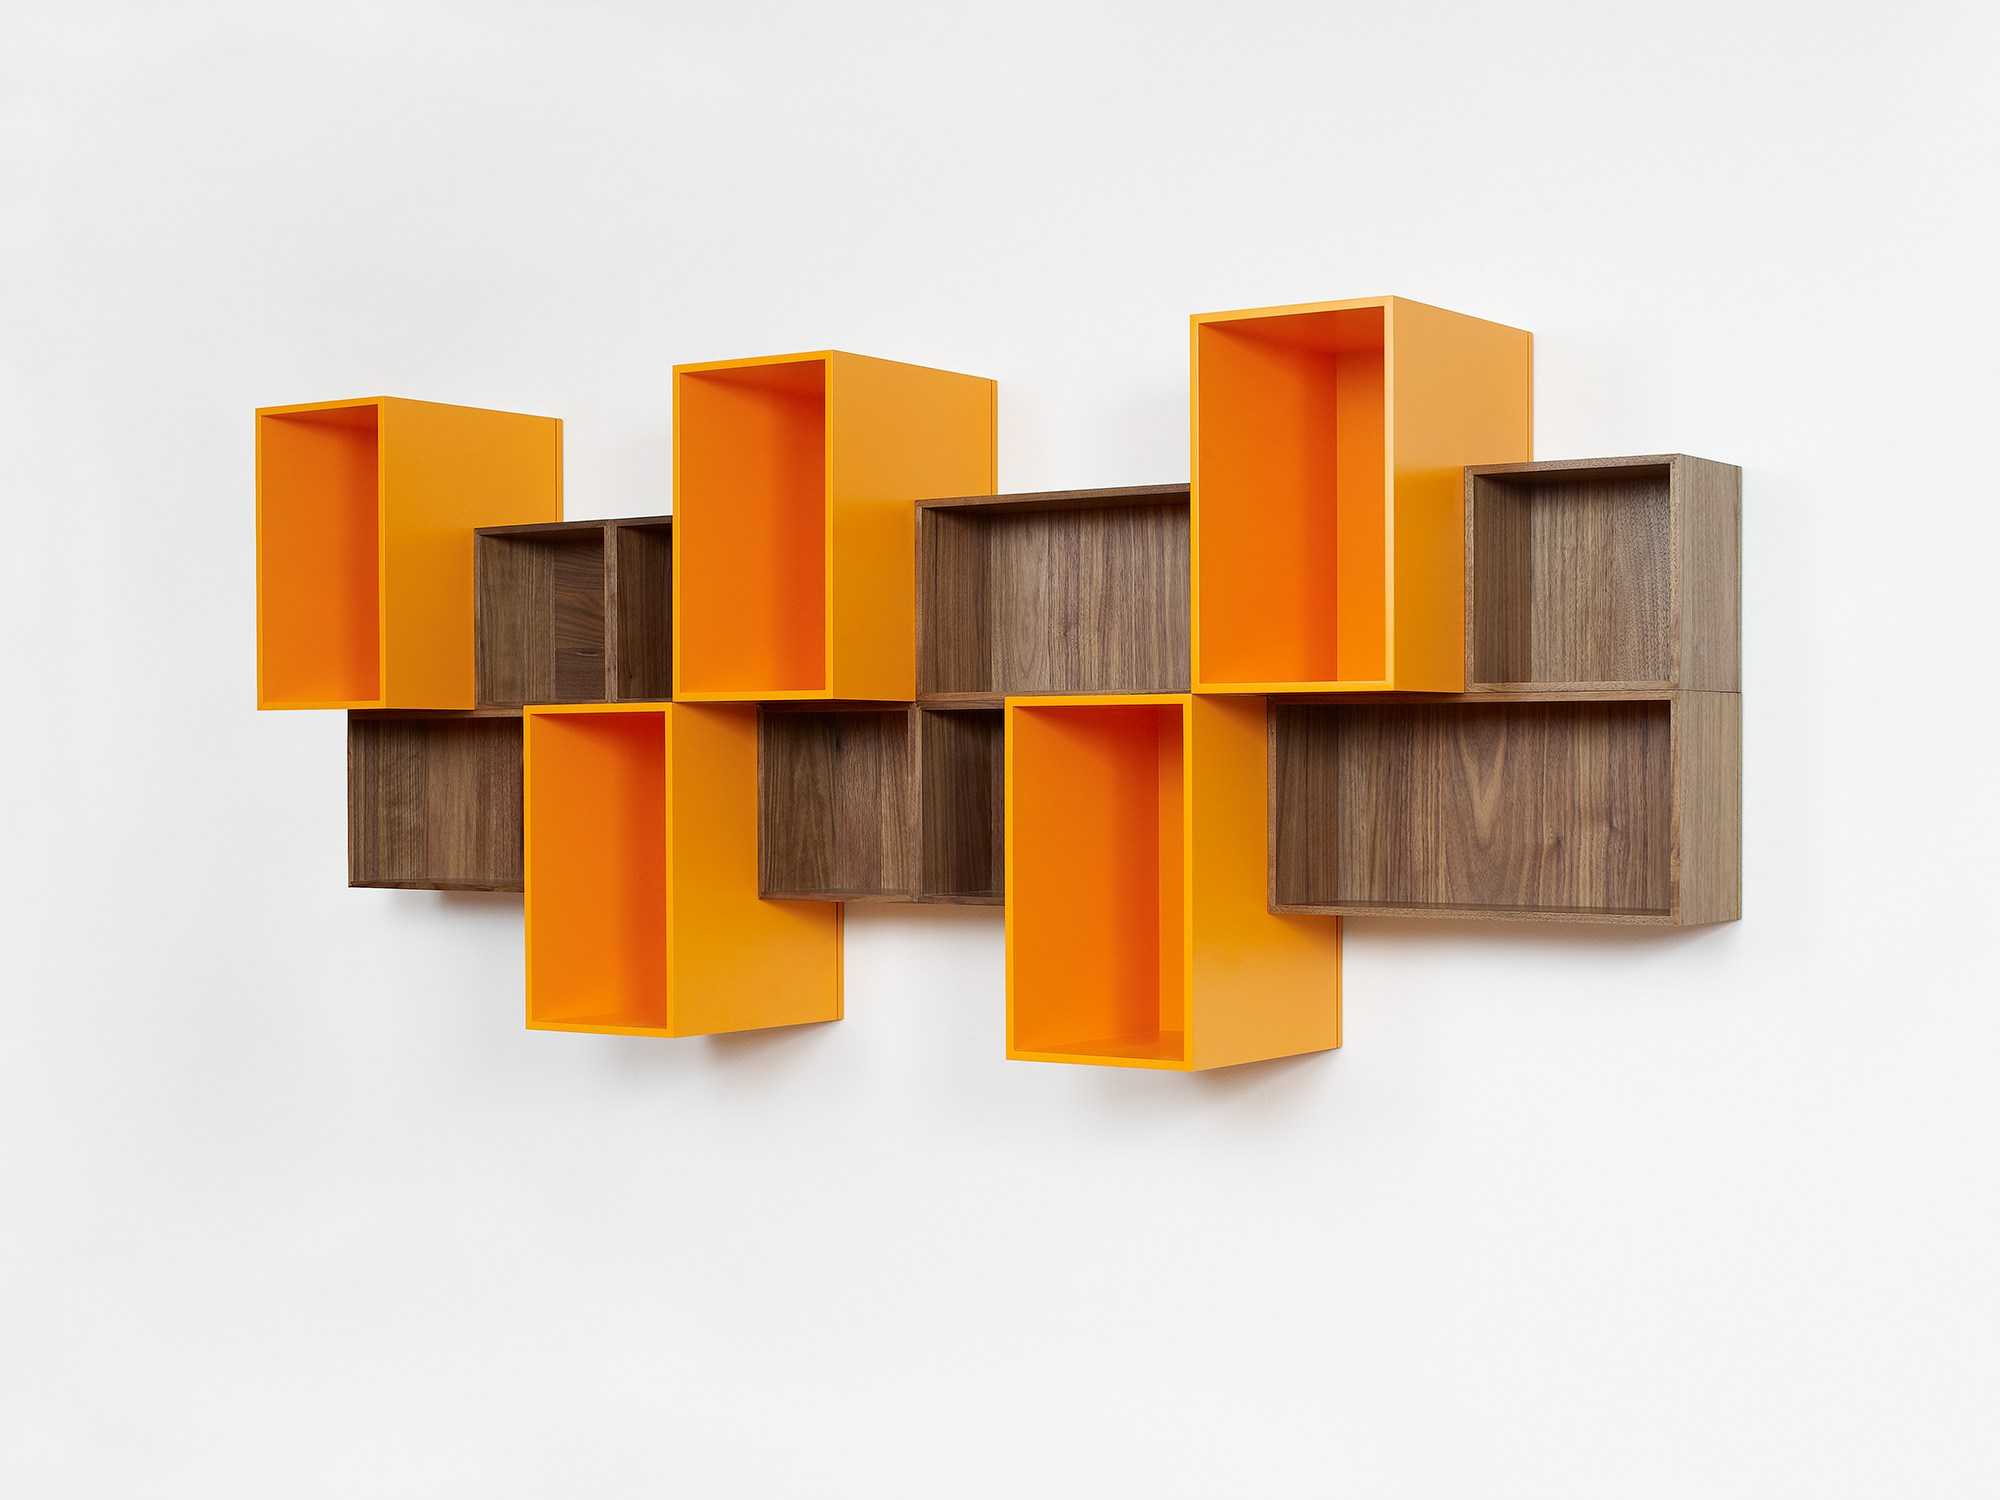 Biblioth que murale modulable by cubit by mymito design cubit - Bibliotheque murale contemporaine ...